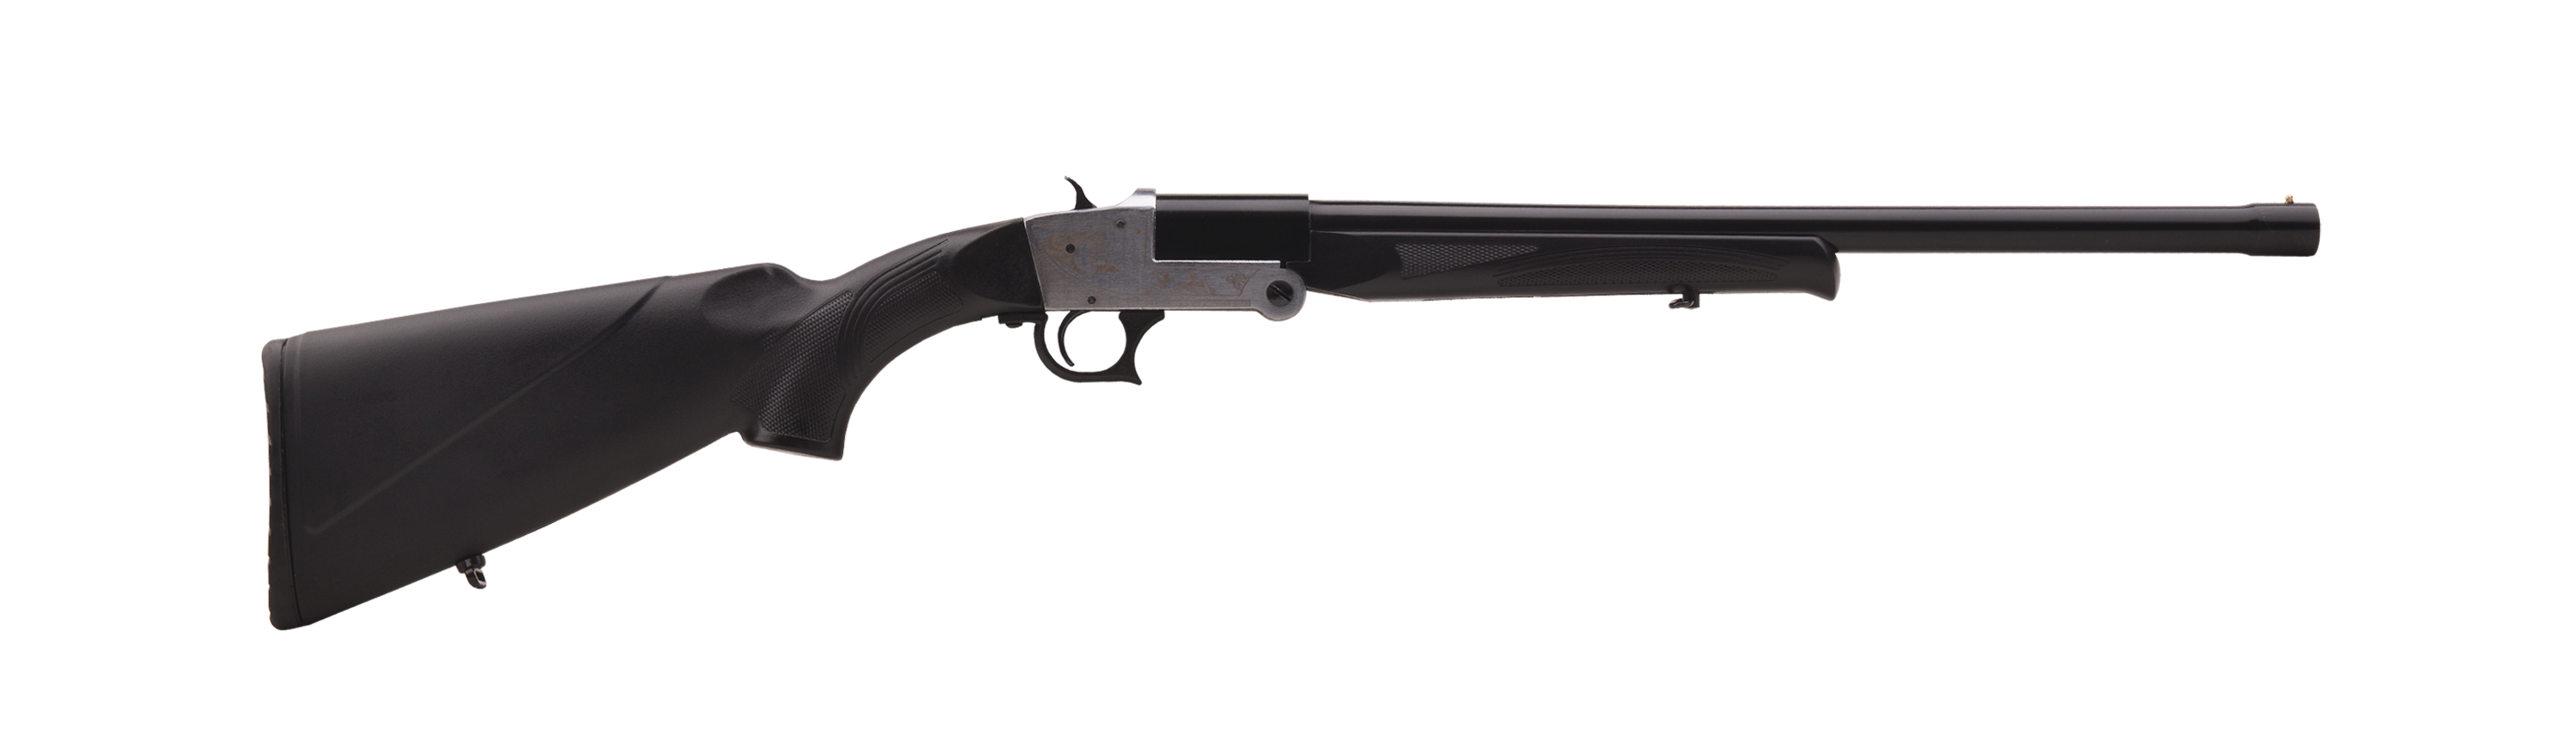 Adler Arms MT 204 Single Barrel Shotgun.